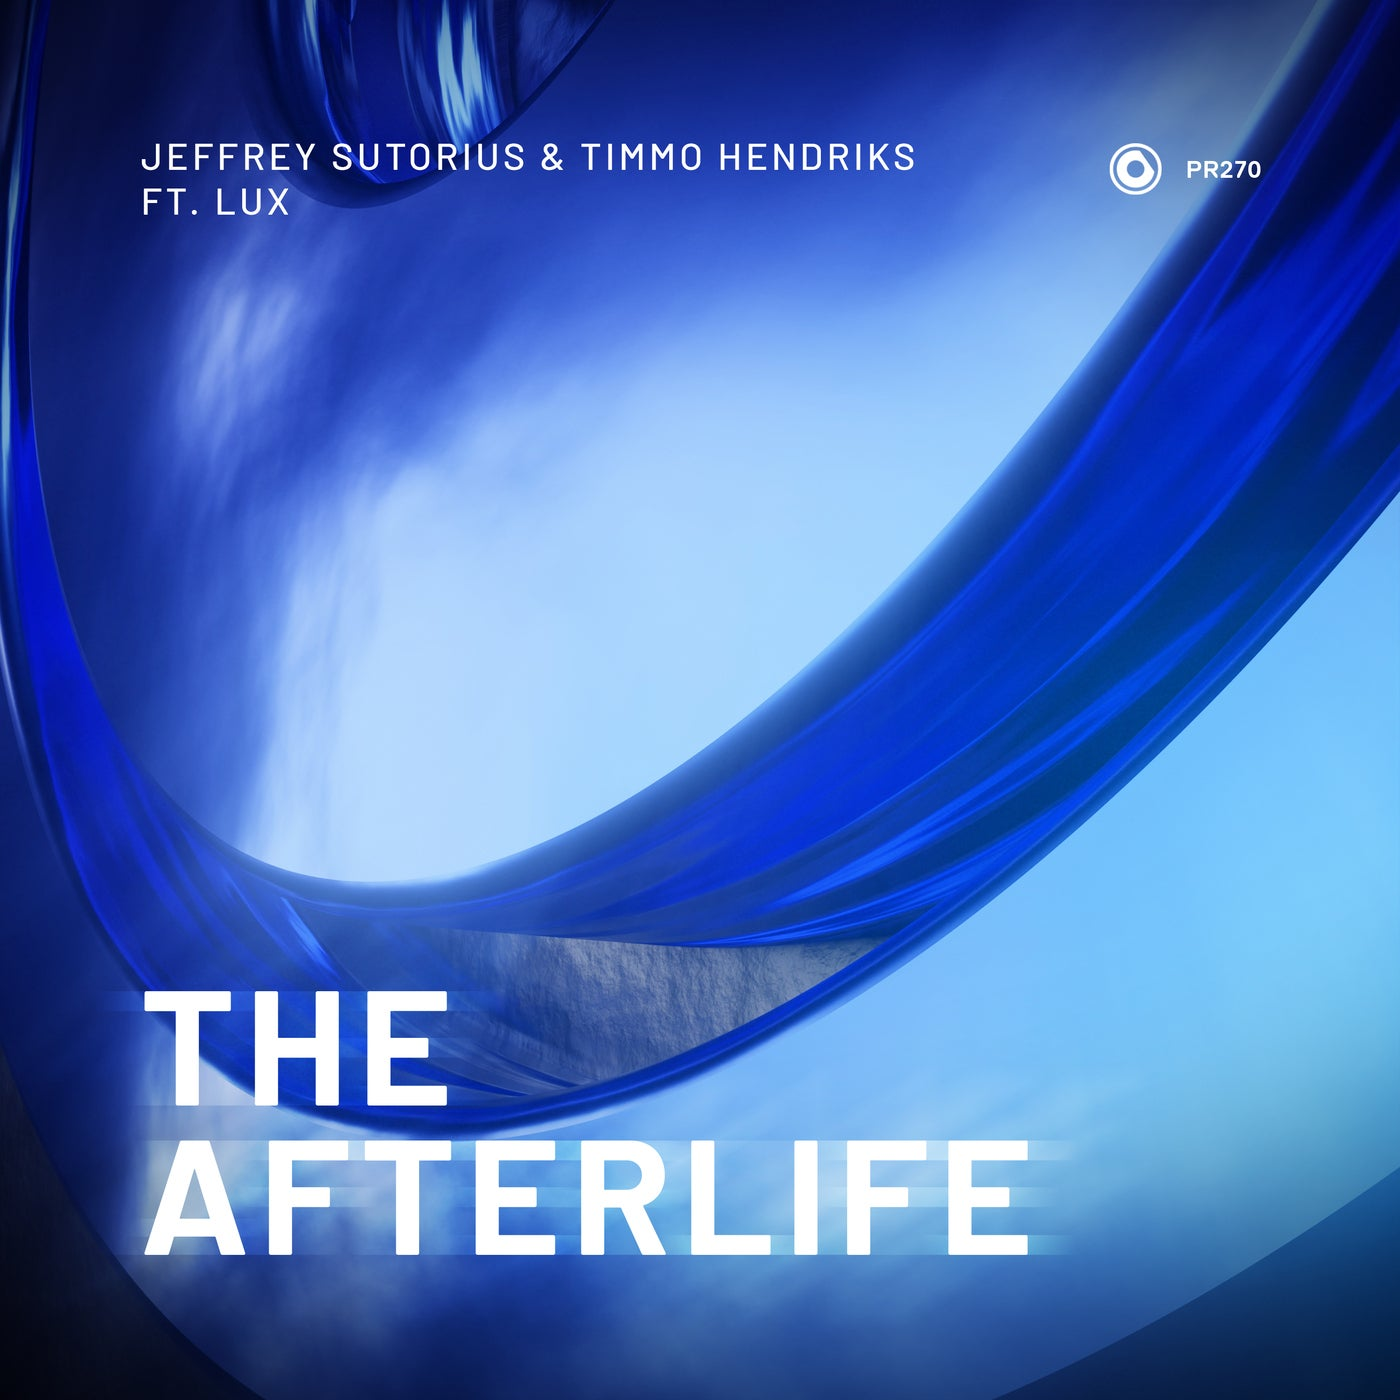 The Afterlife feat. LUX (Extended Mix)